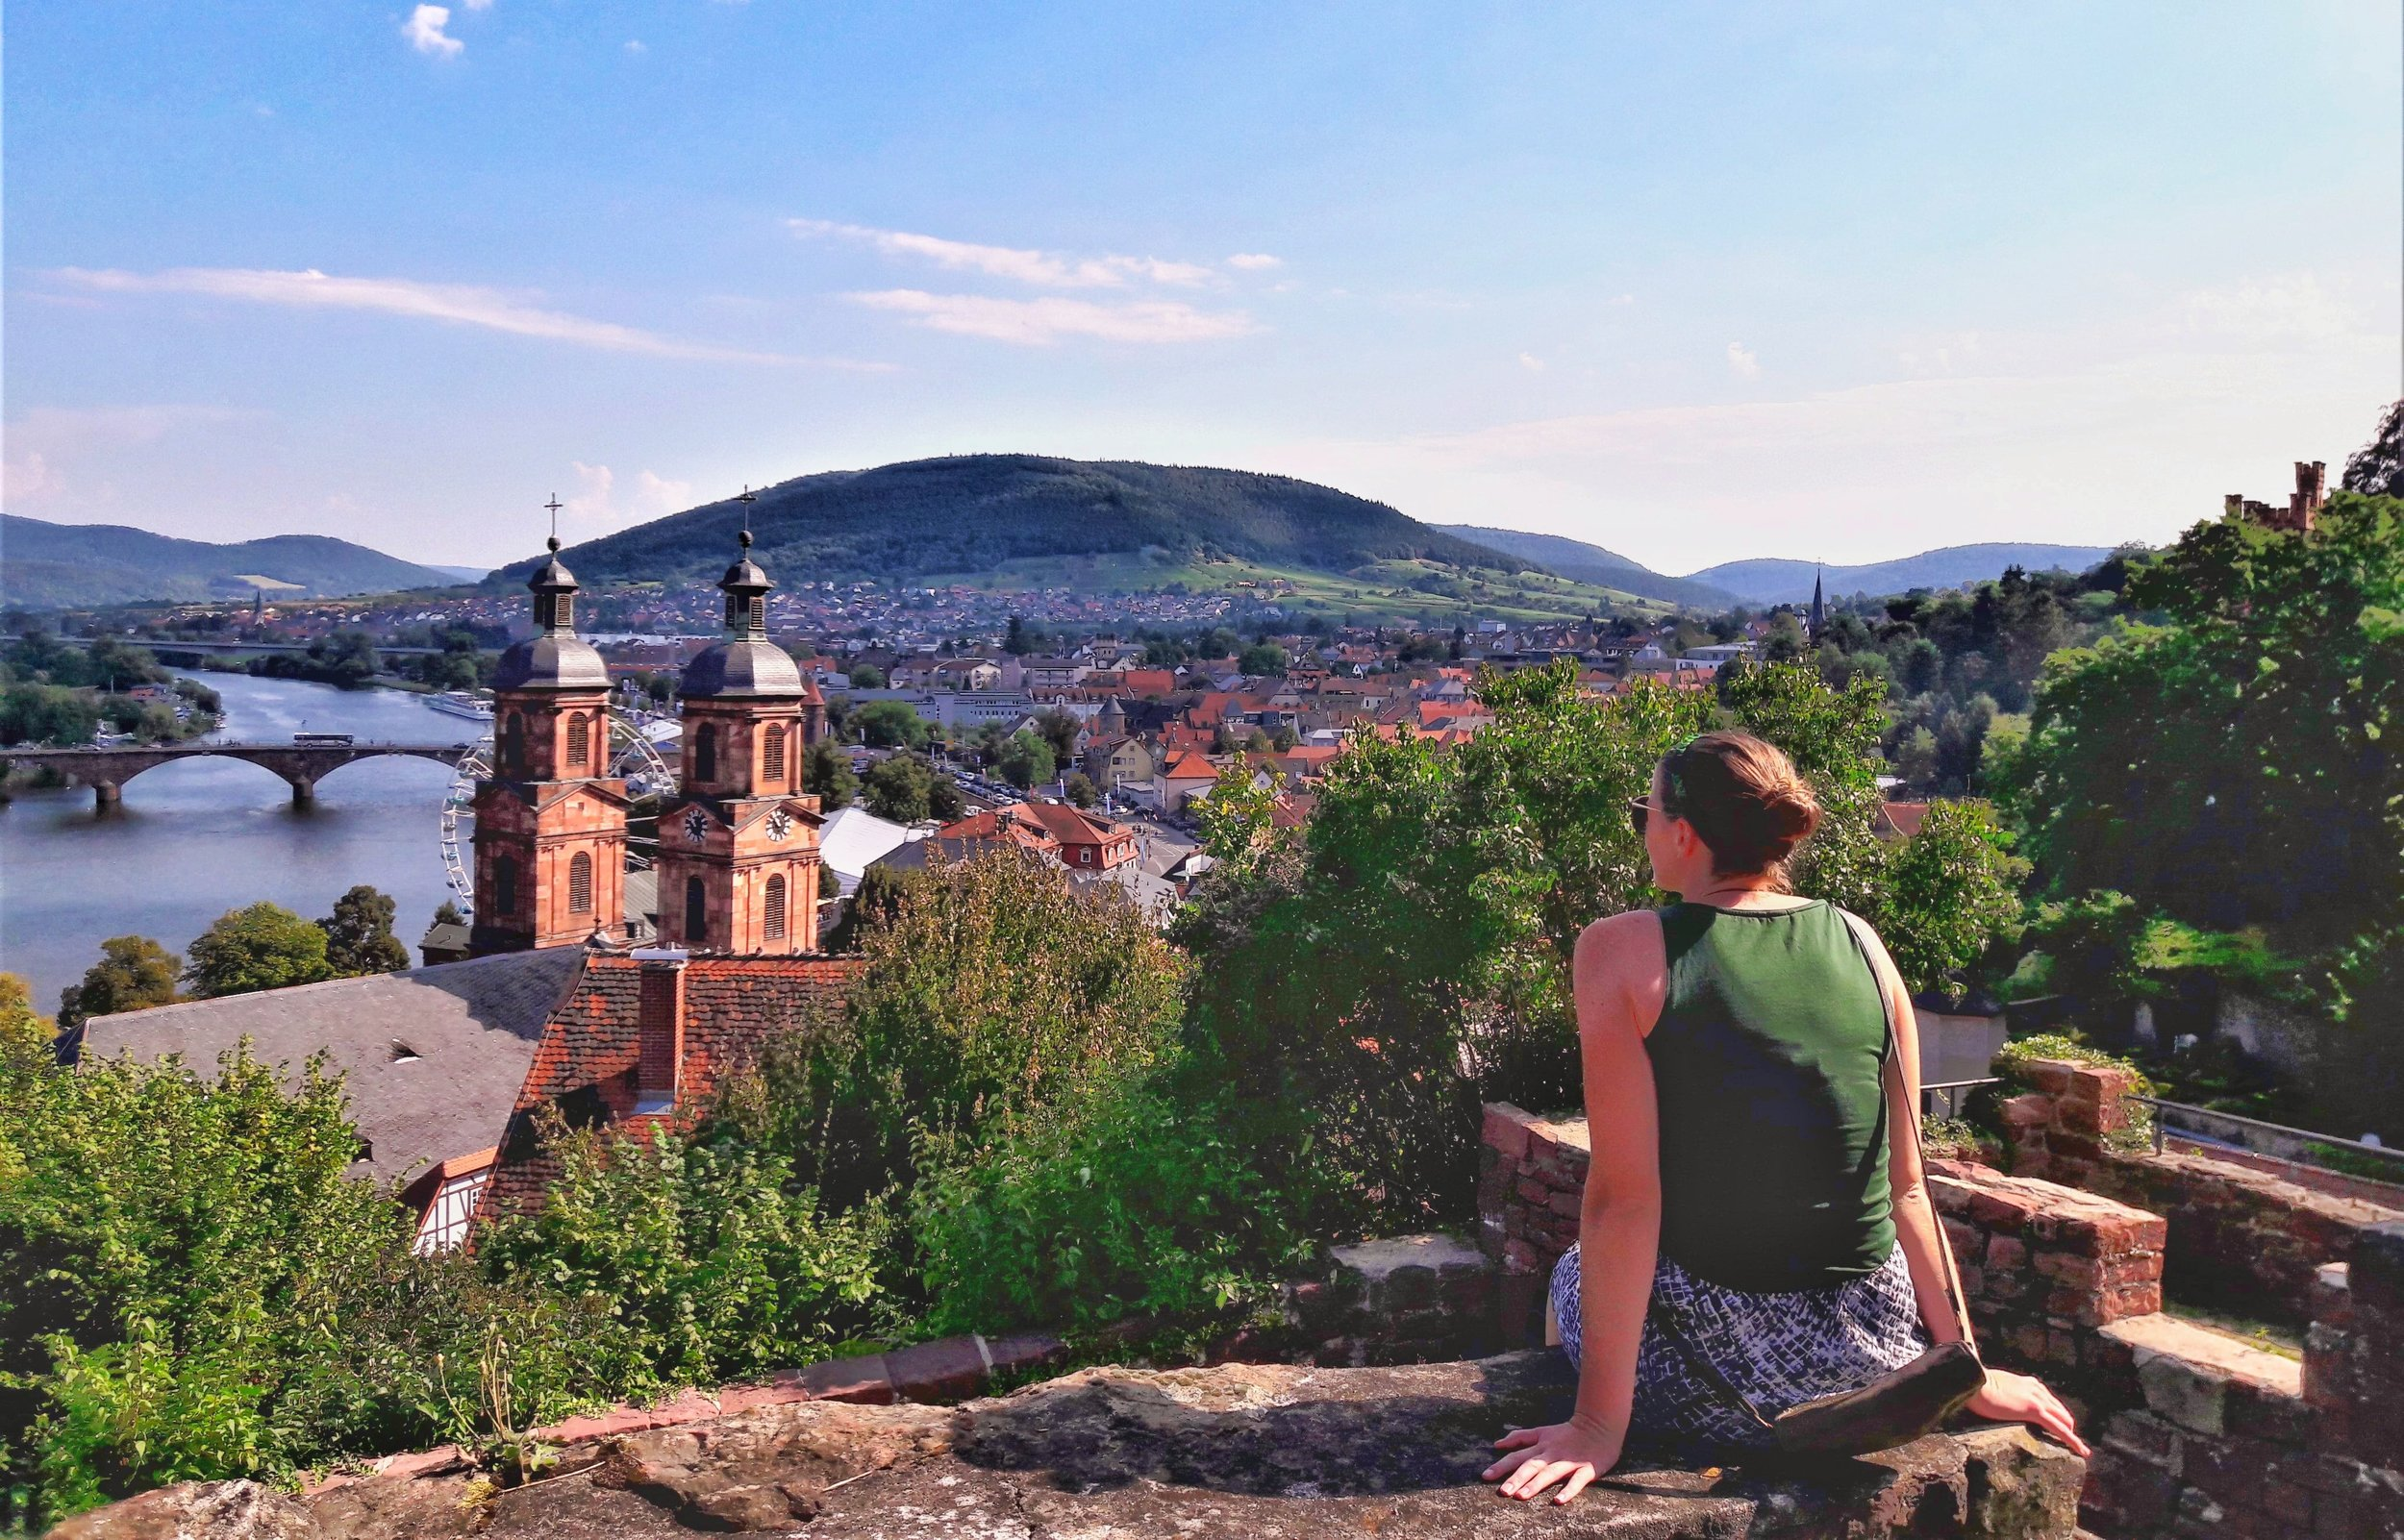 the views over miltenberg, this small town is easy to reach in a day trip from frankfurt